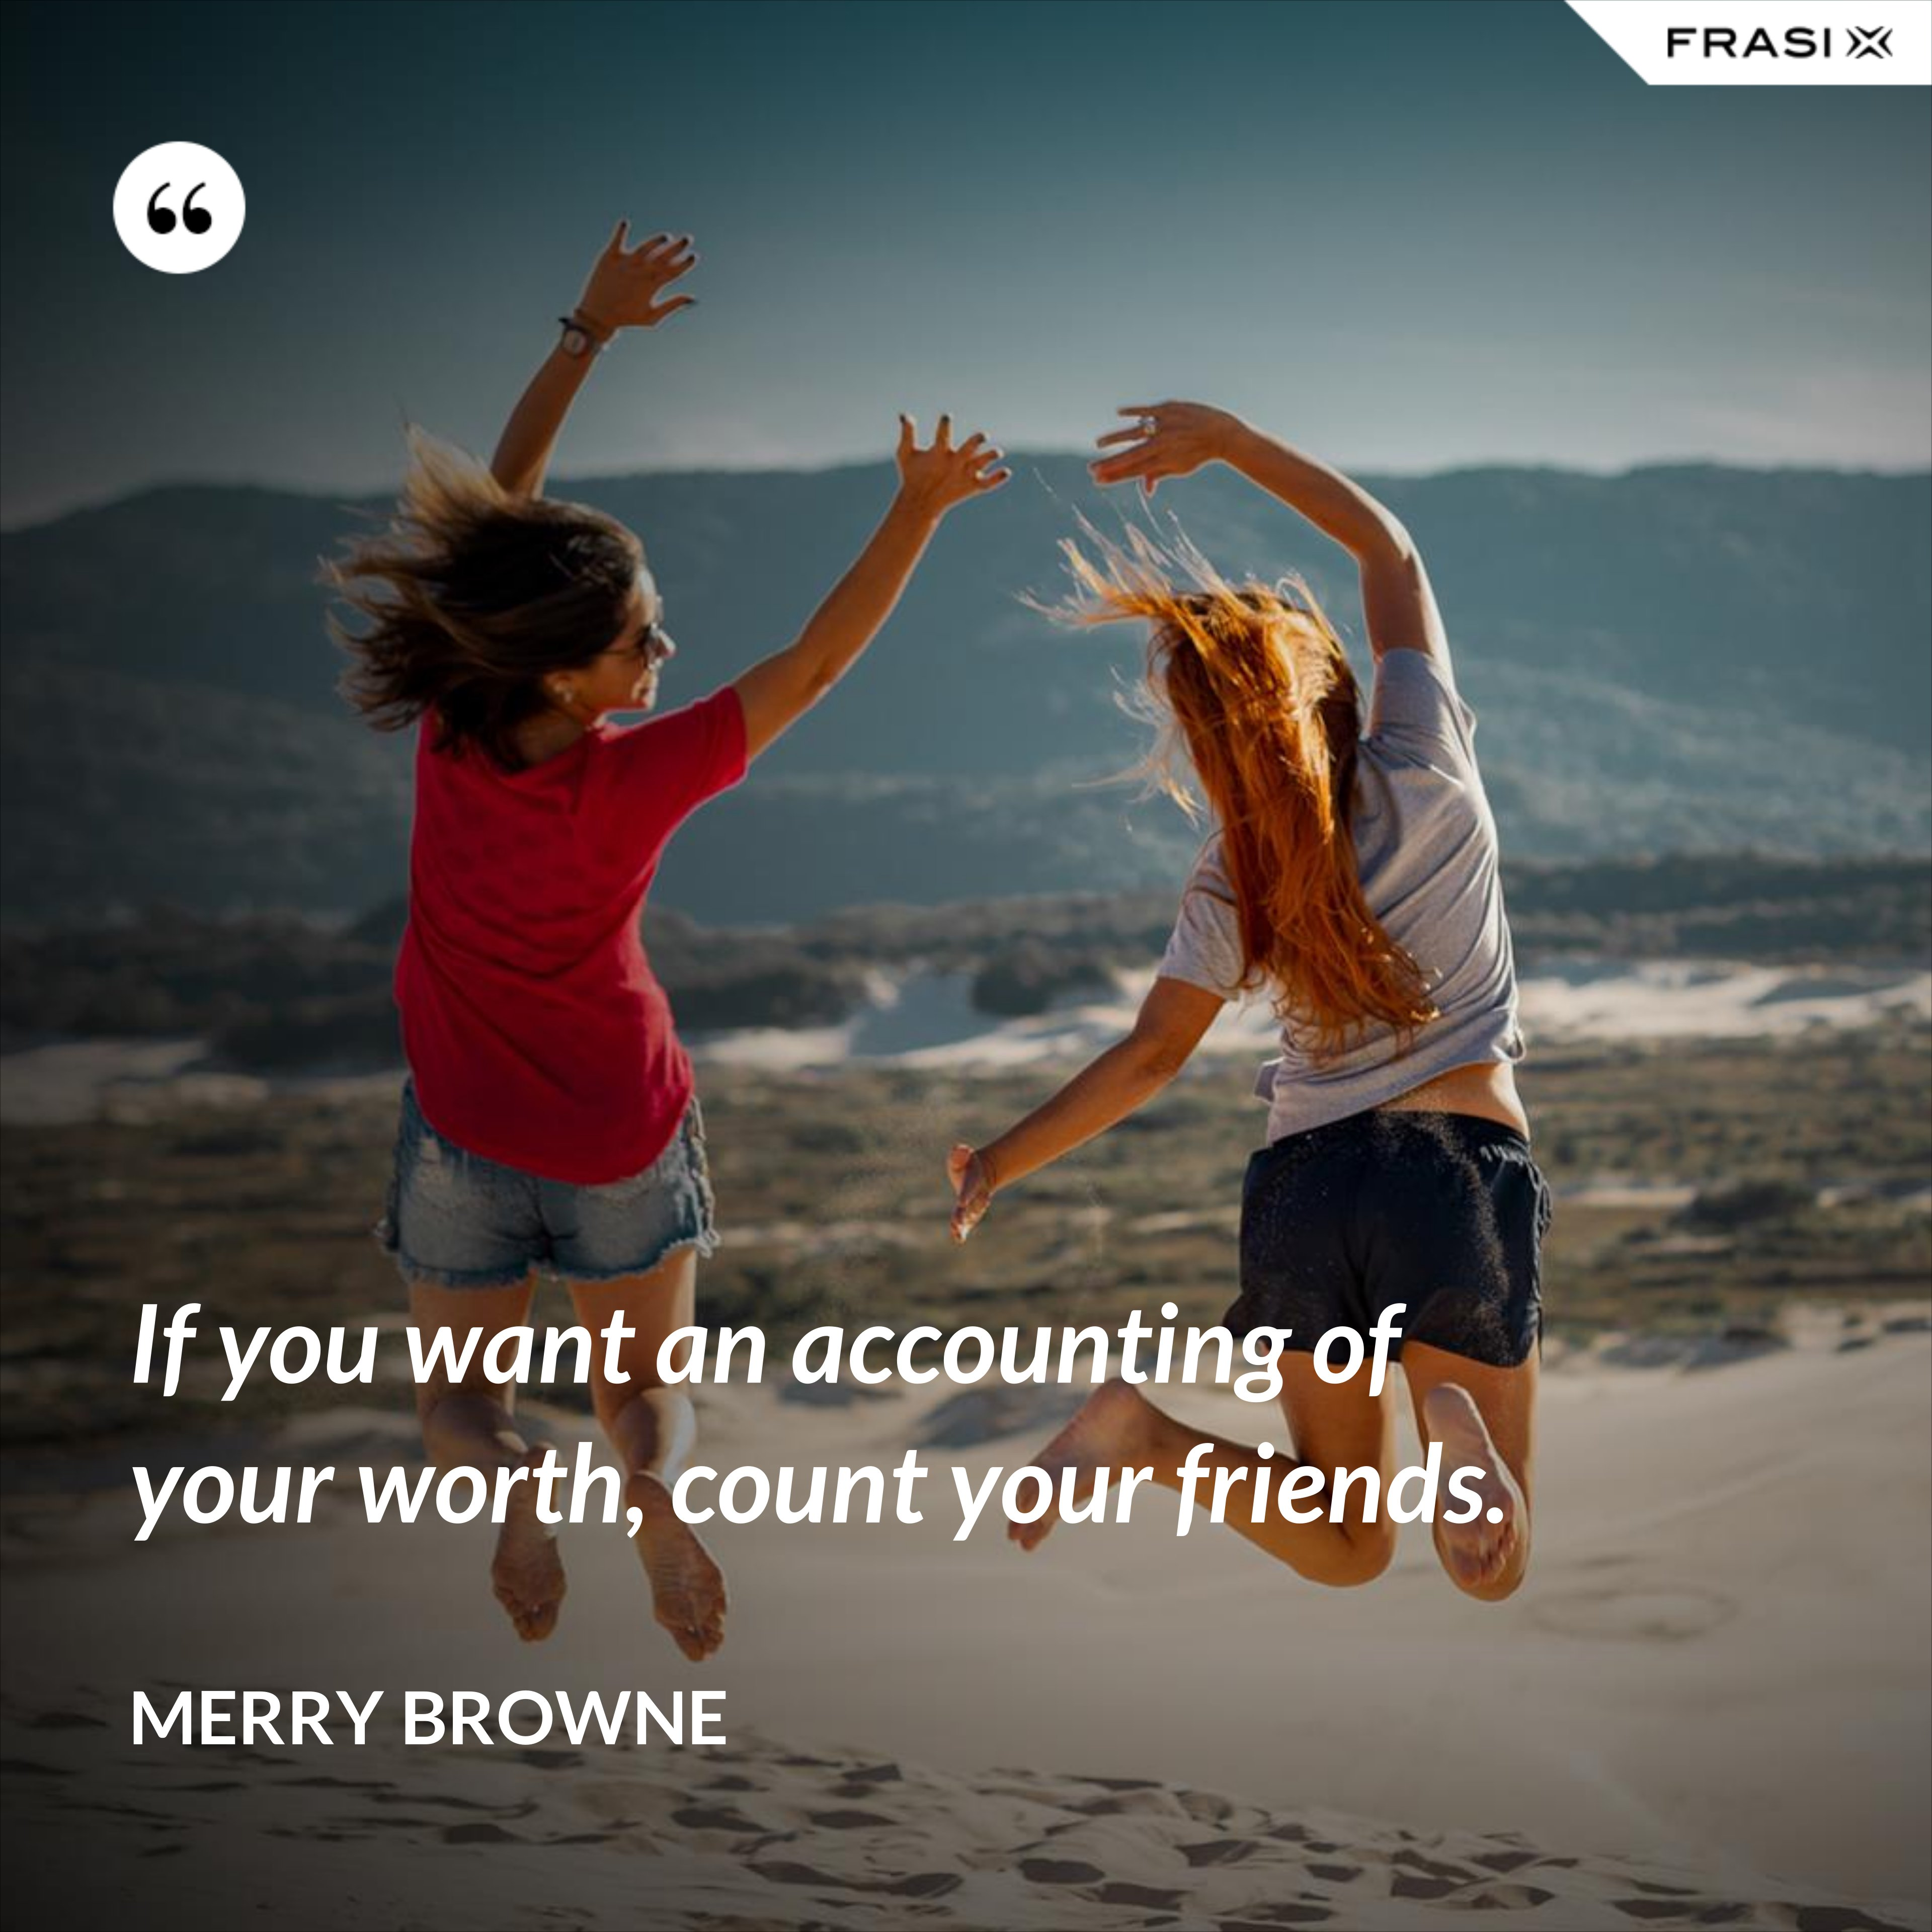 If you want an accounting of your worth, count your friends. - Merry Browne